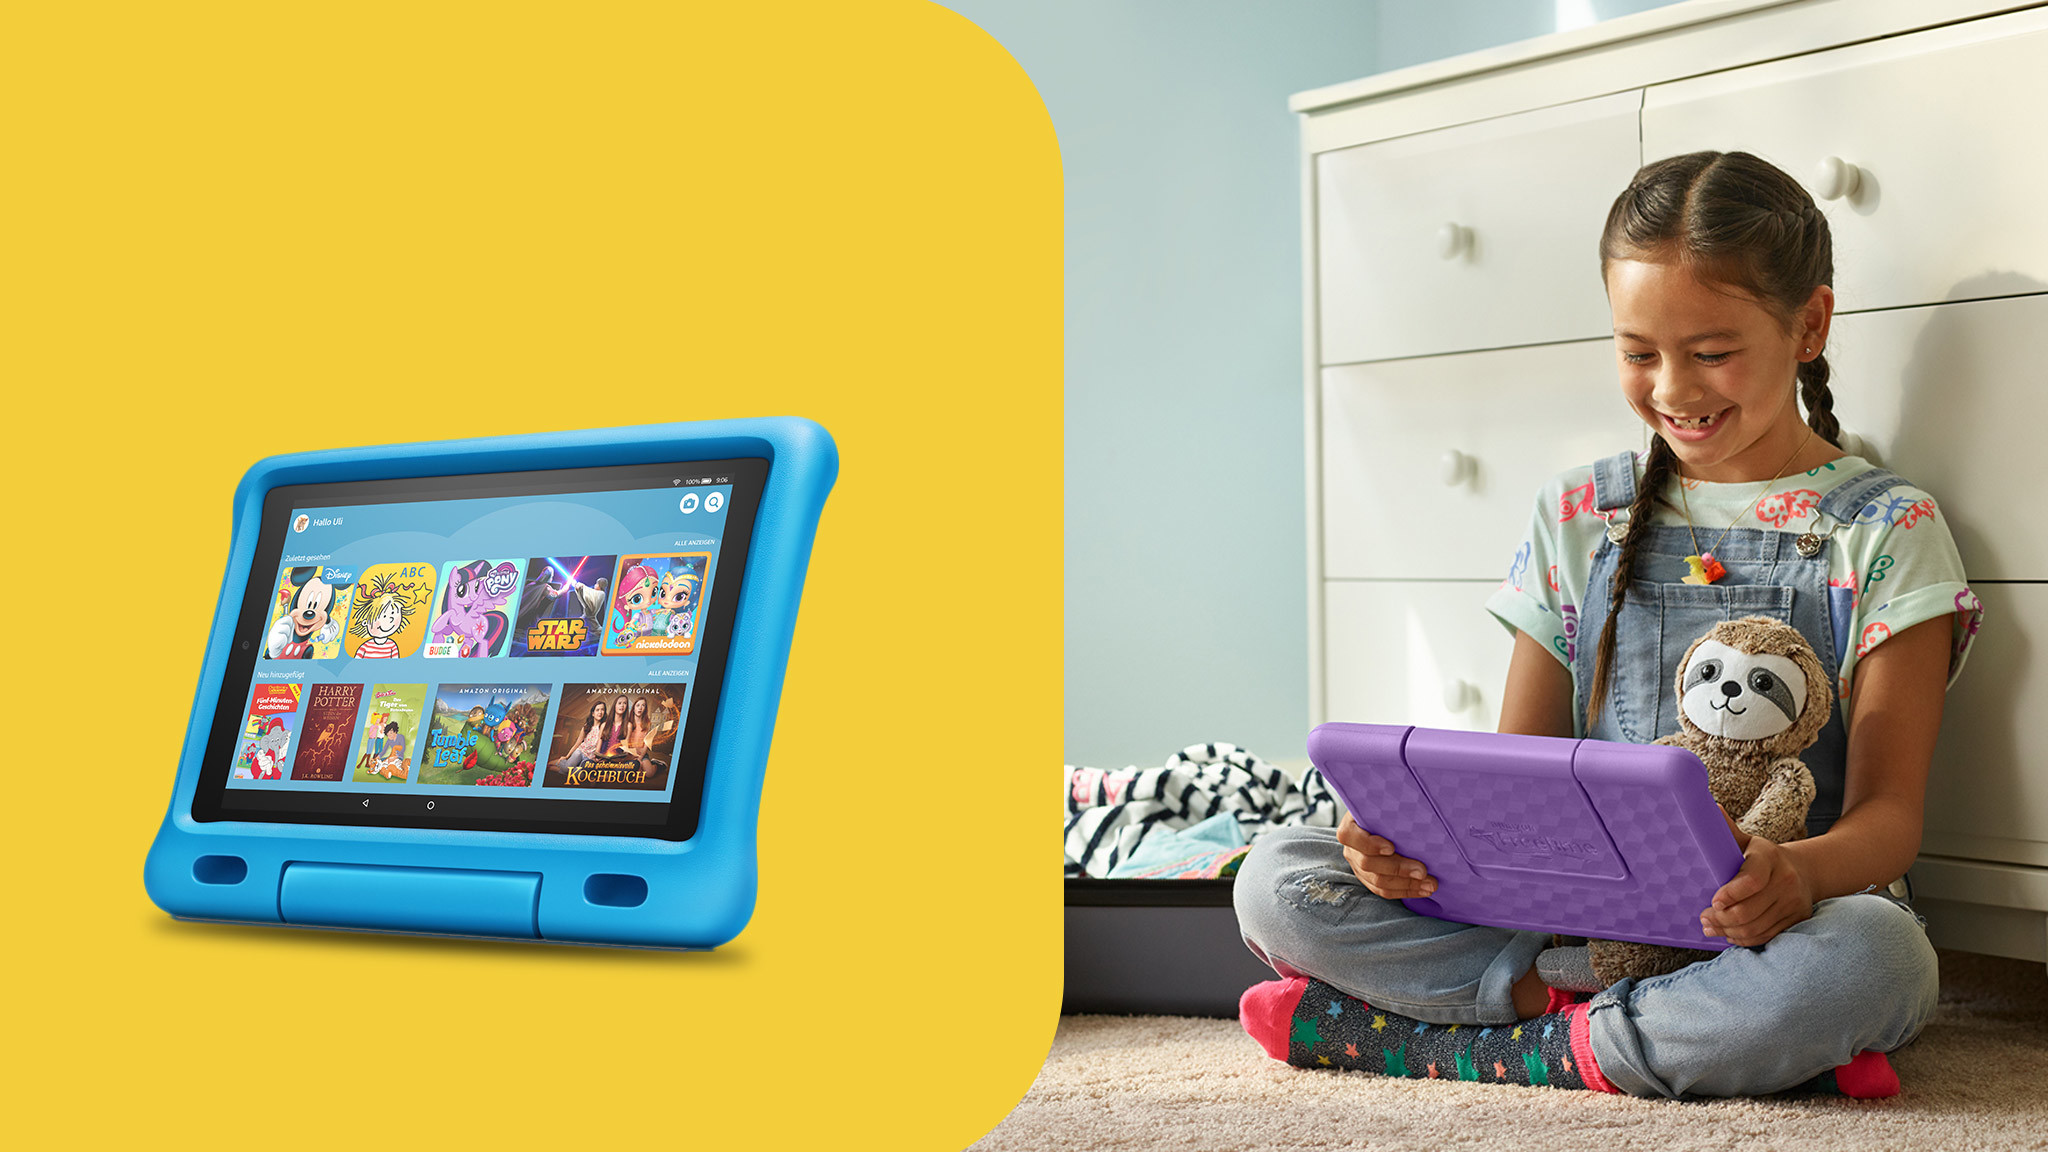 Links: Amazon Fire Kids Edition vor gelbem Hintergrund, rechts: Kind spielt mit Amazon Fire HD 10 Kids Edition © Amazon